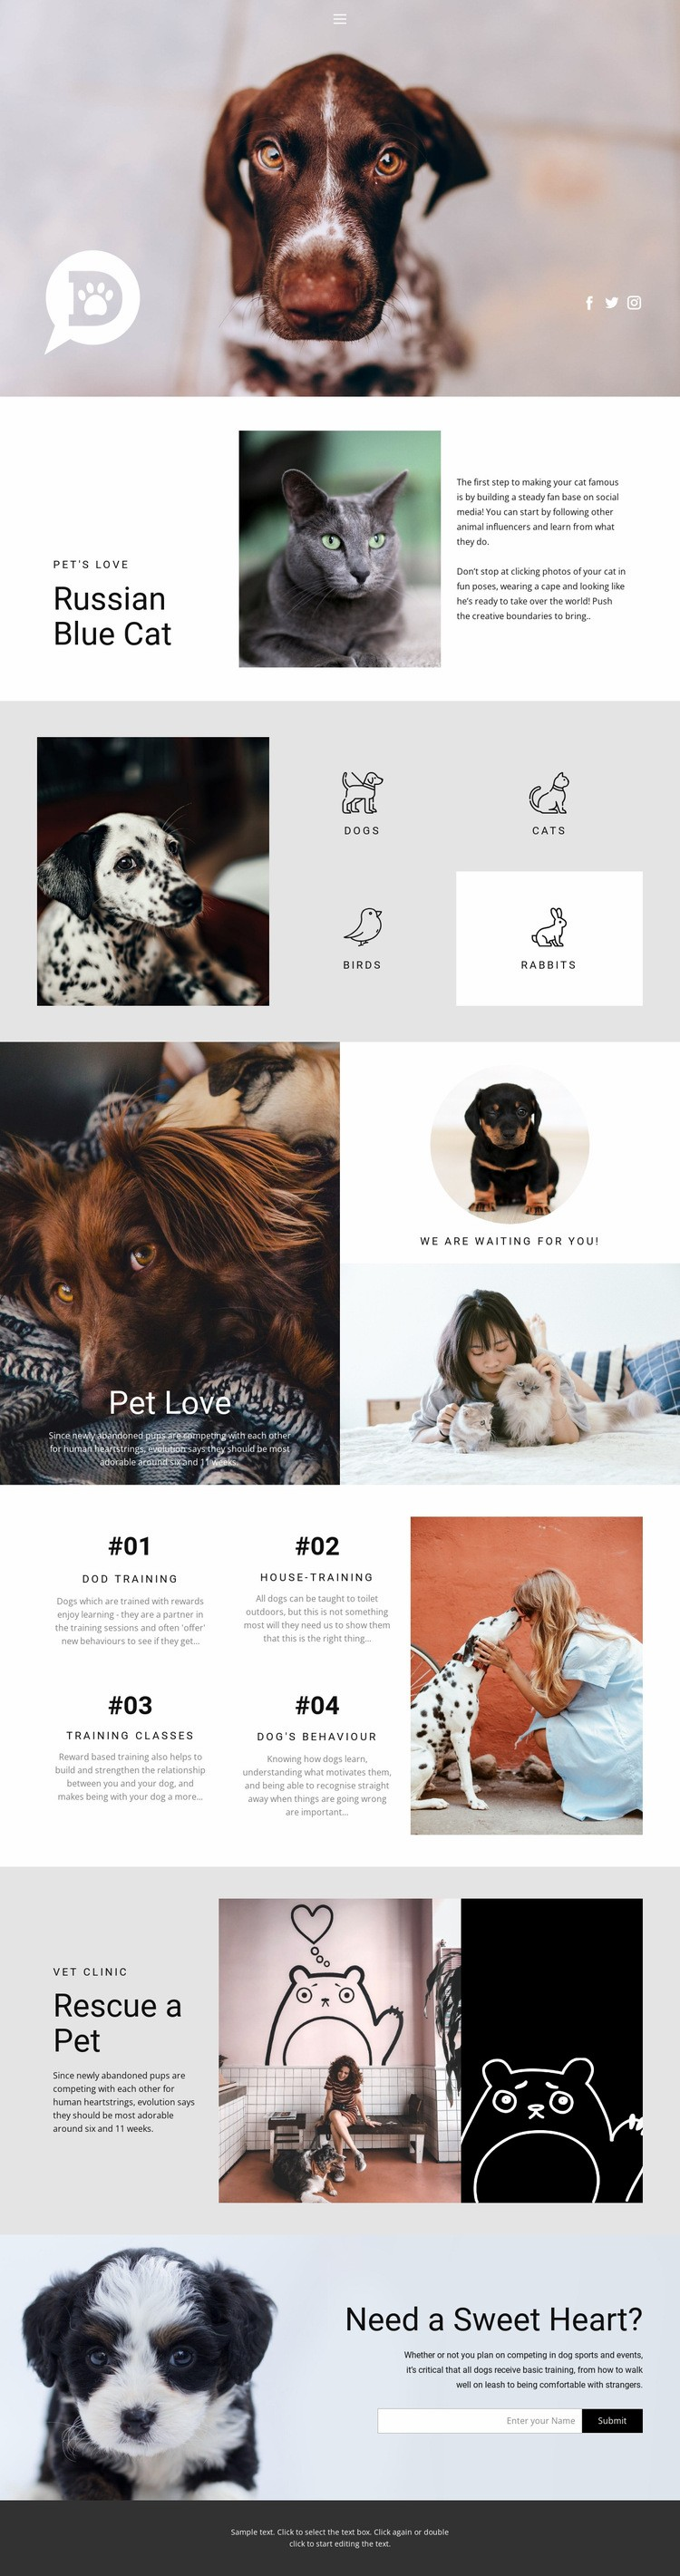 Care for pets and animals Wysiwyg Editor Html